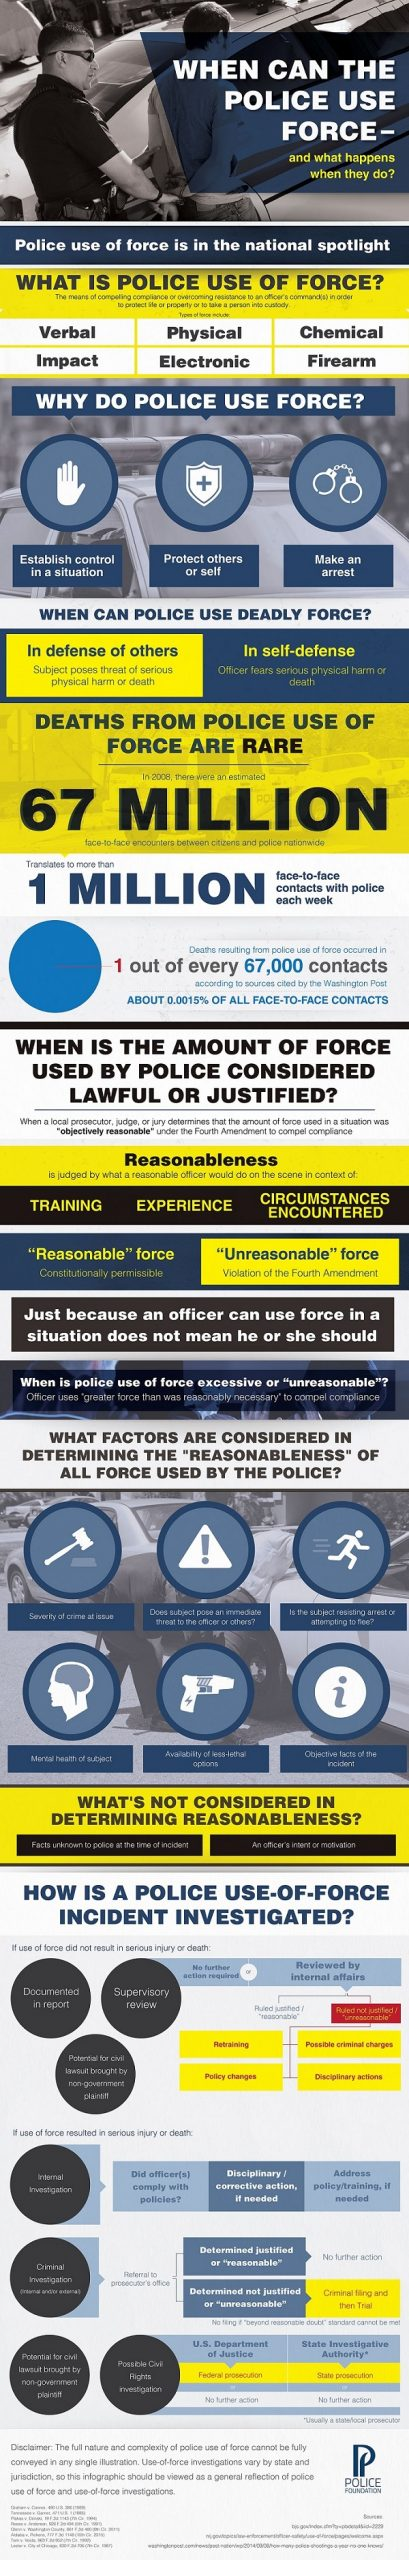 Use of Force Infographic